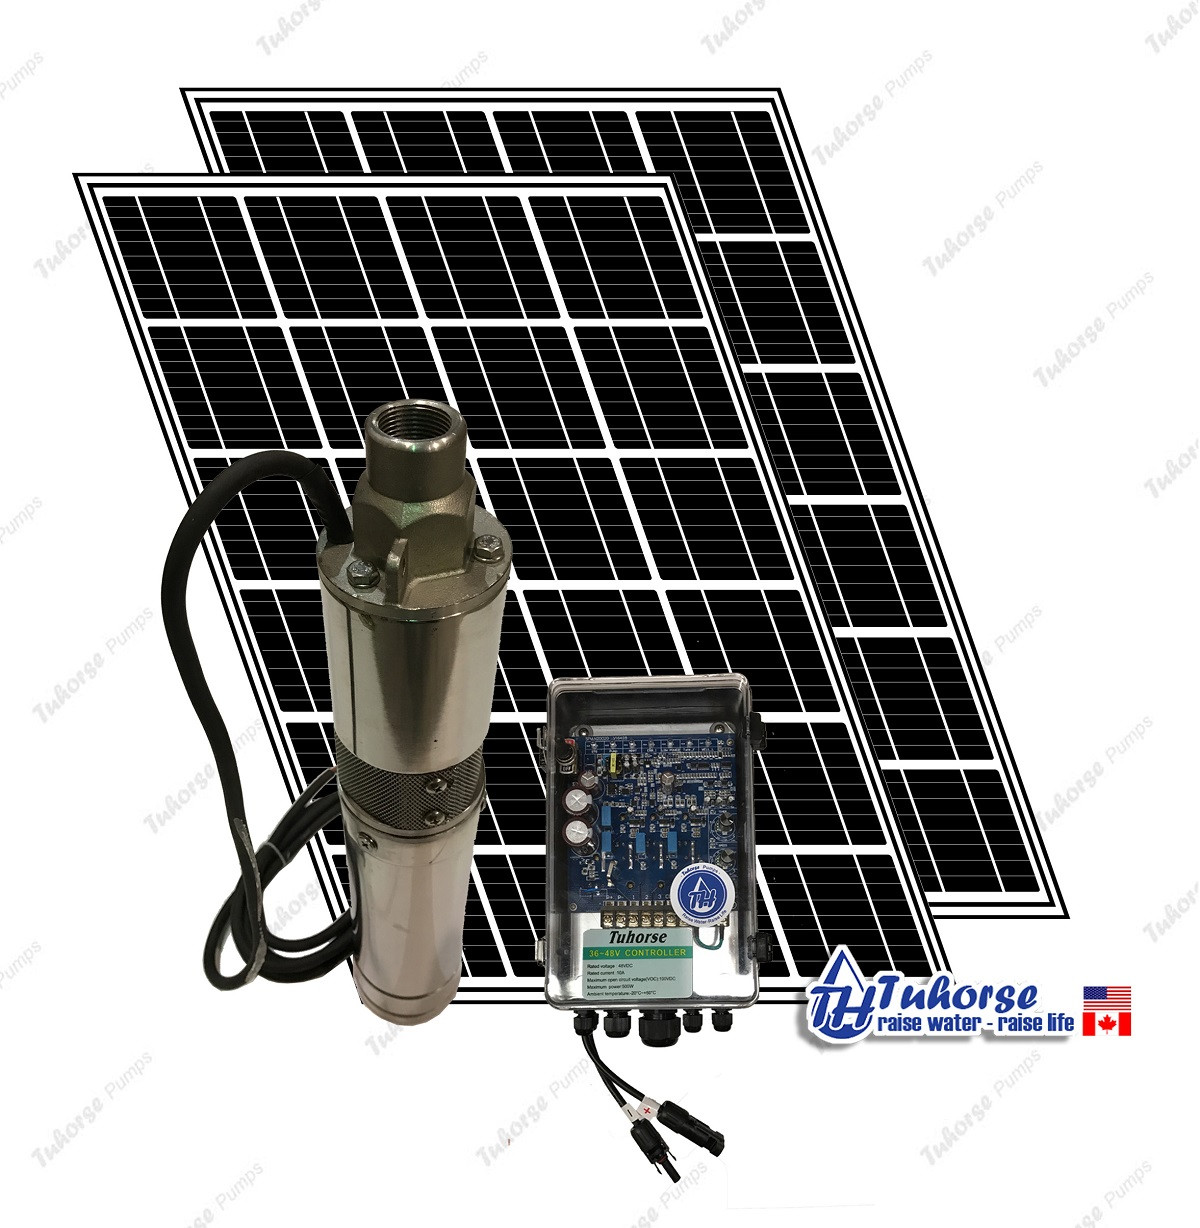 hight resolution of 3 500w solar submersible deep well pump 560w solar panel 120 feet cable complete kit